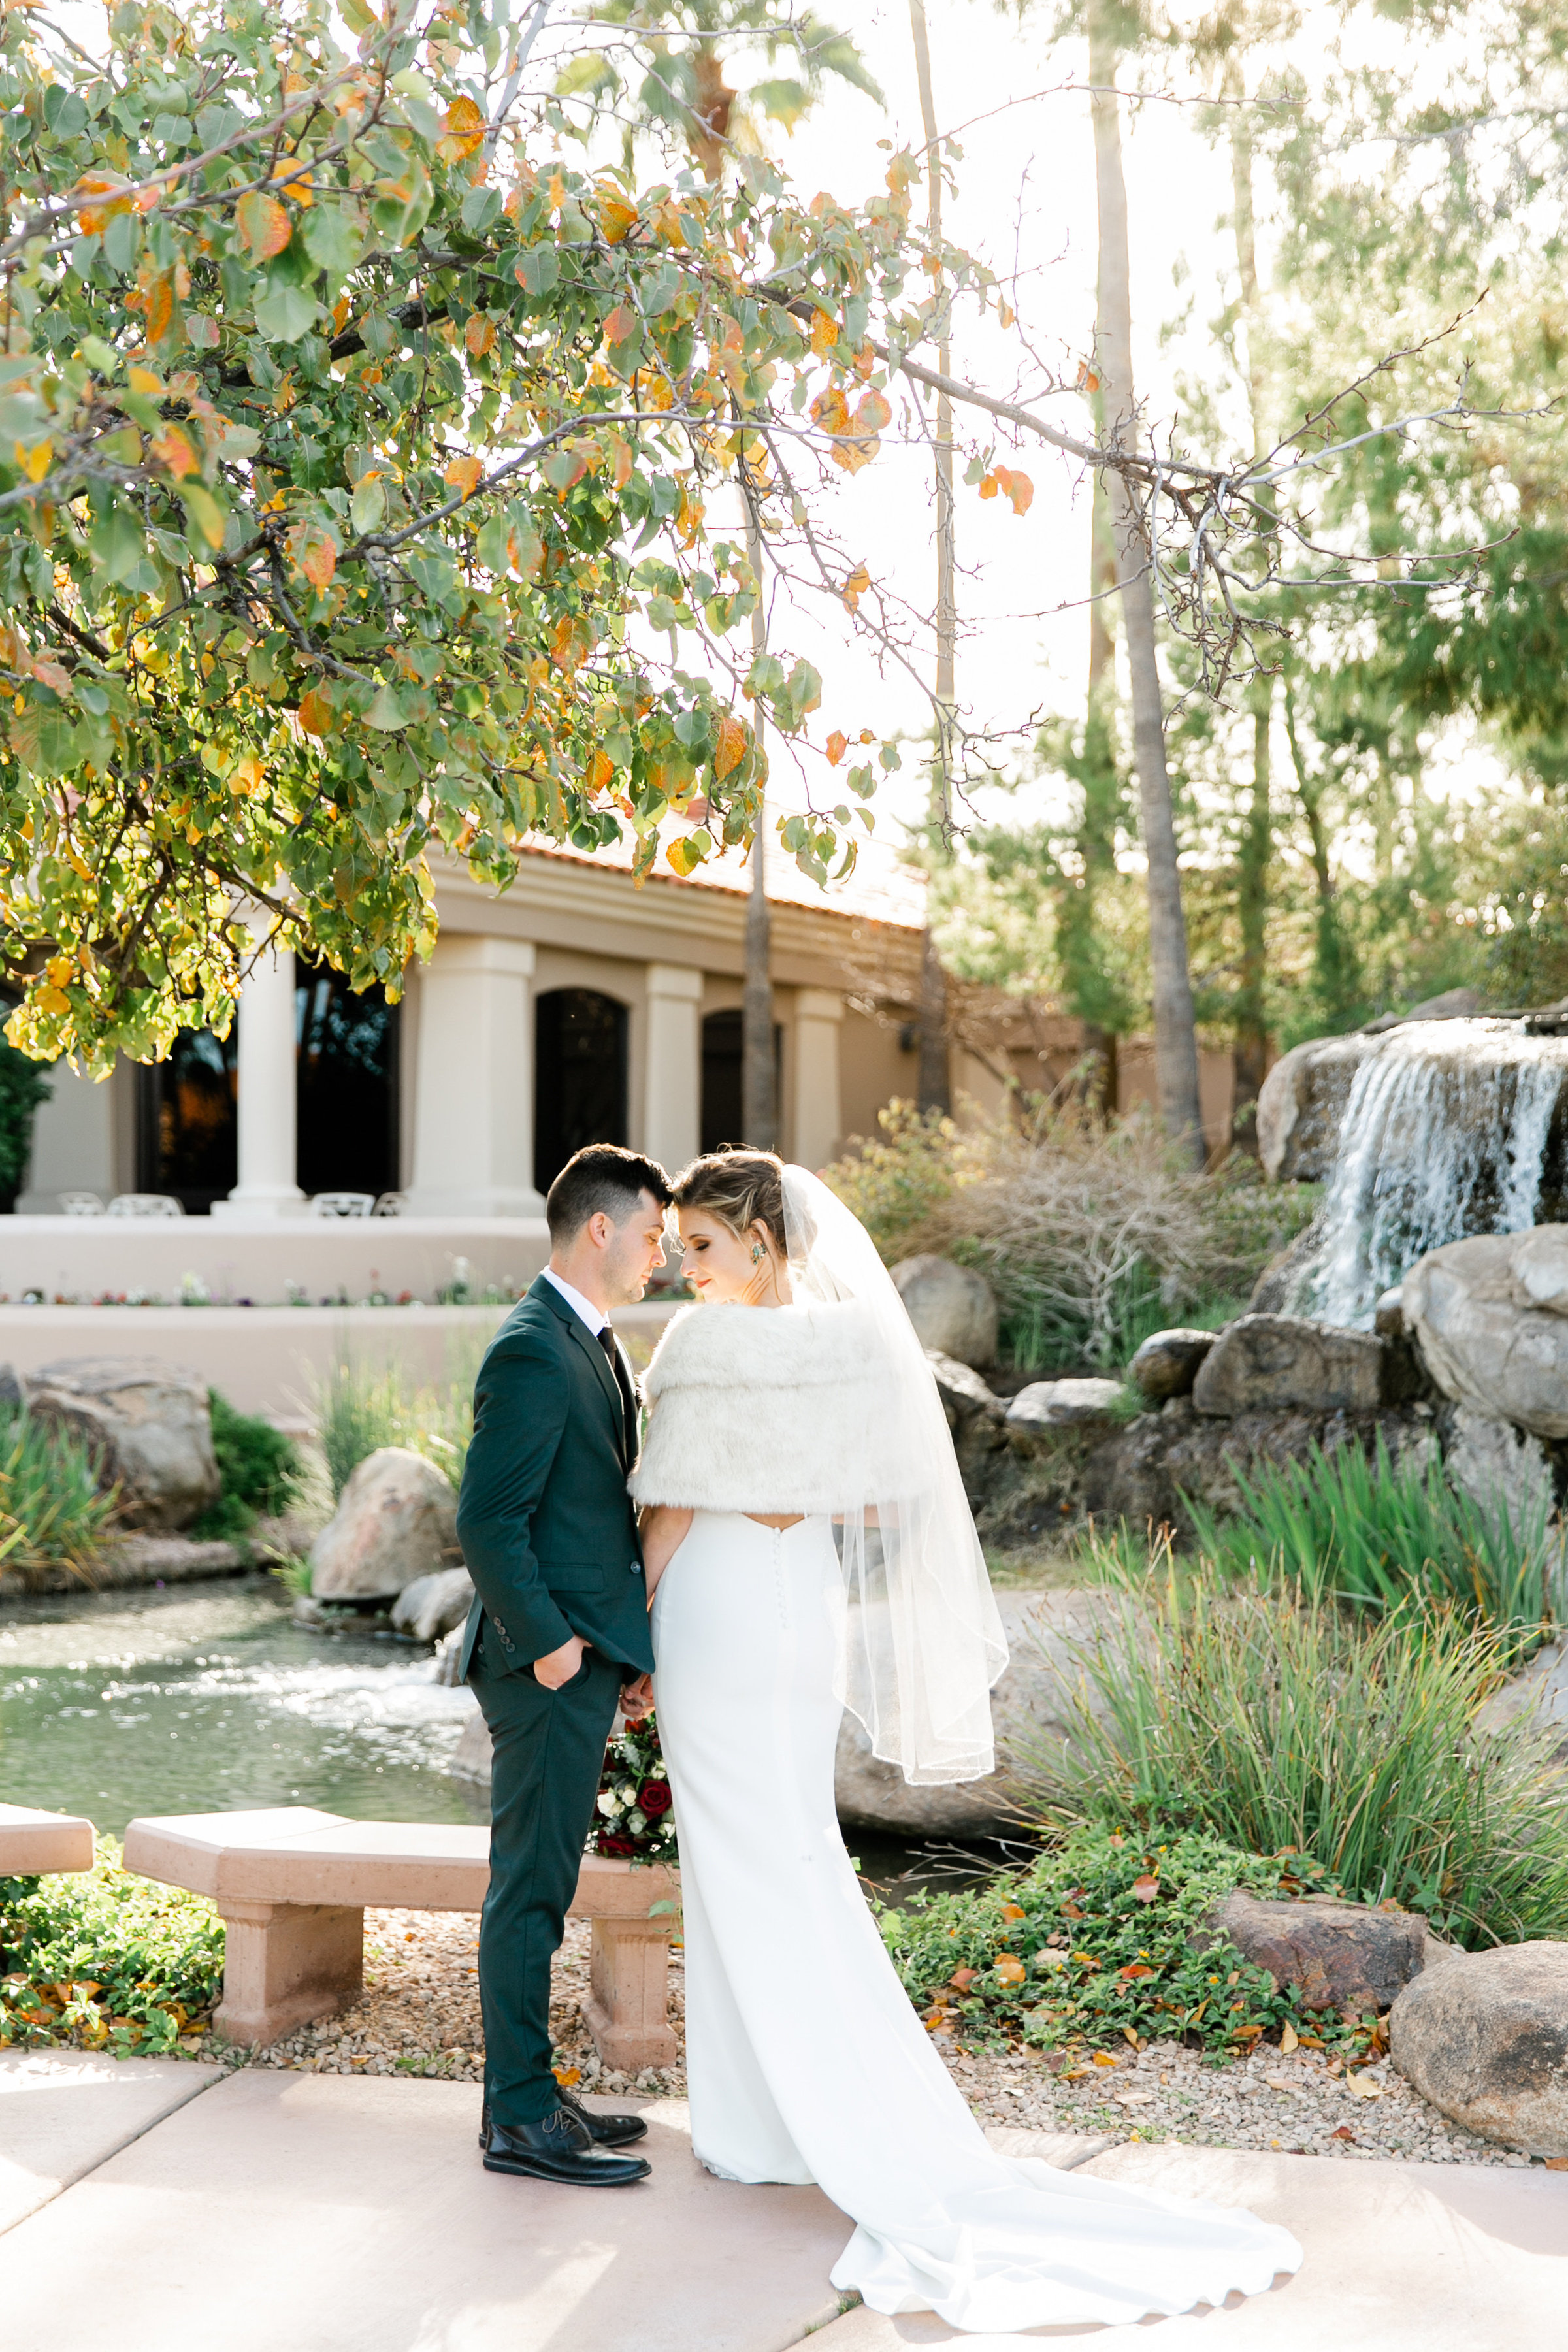 Karlie Colleen Photography - Gilbert Wedding - Val Vista Lakes - Brynne & Josh-33